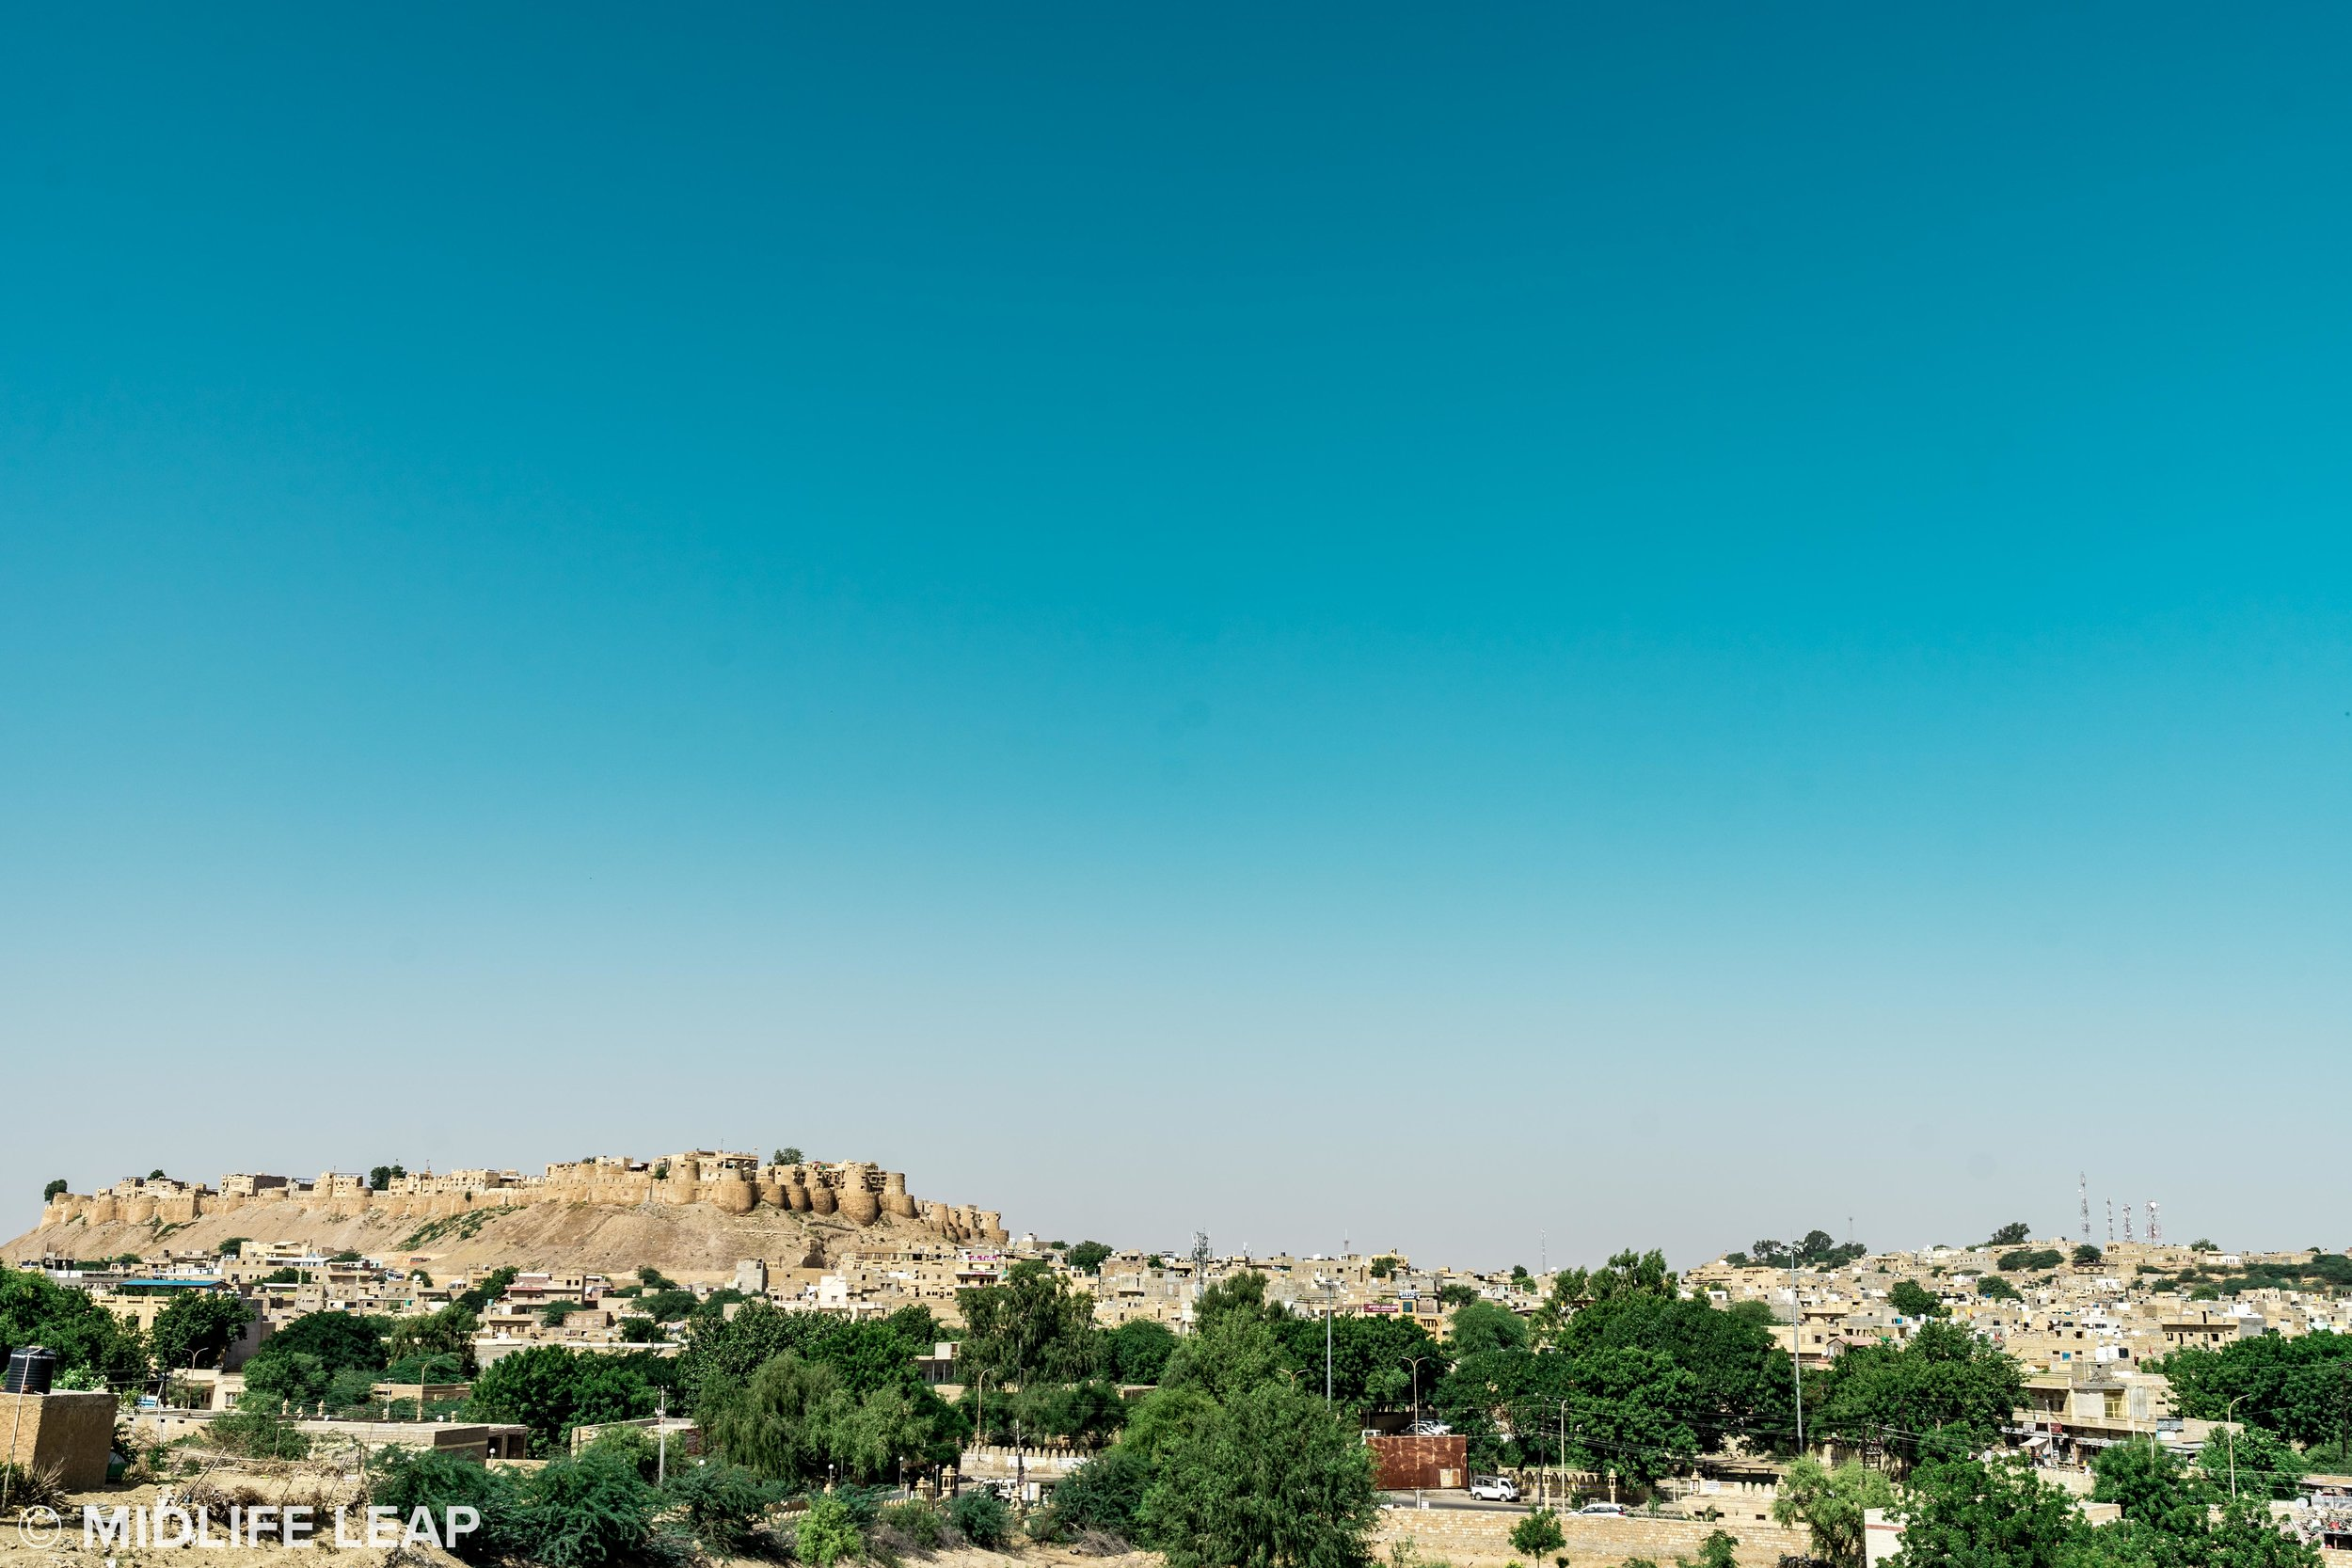 Jaisalmer Fort in the distance